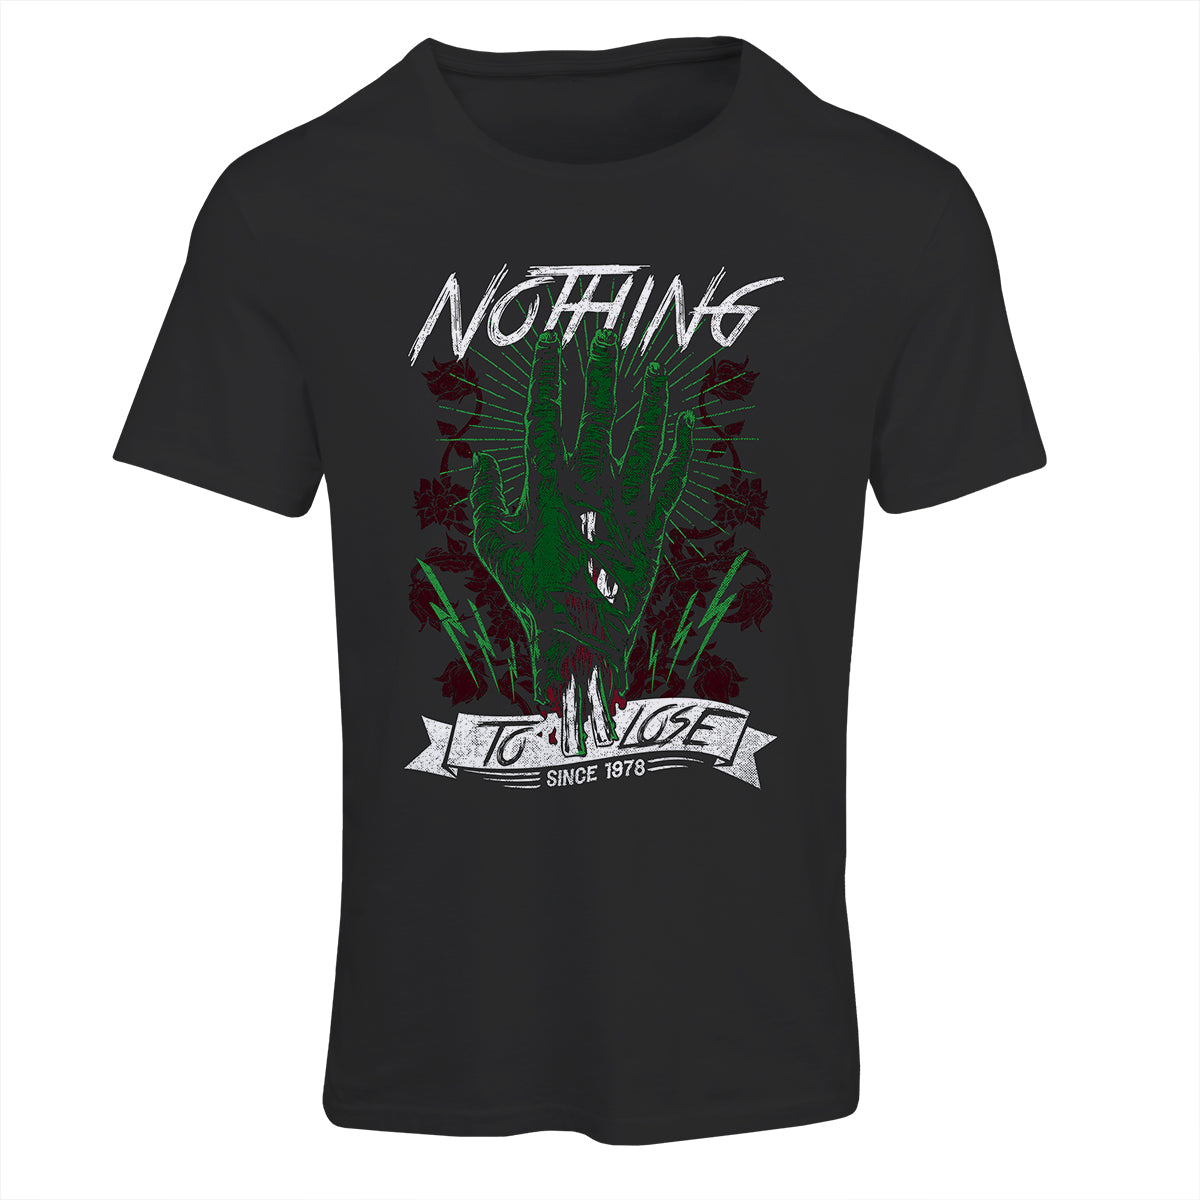 Nothing To Lose | Retro T-Shirt